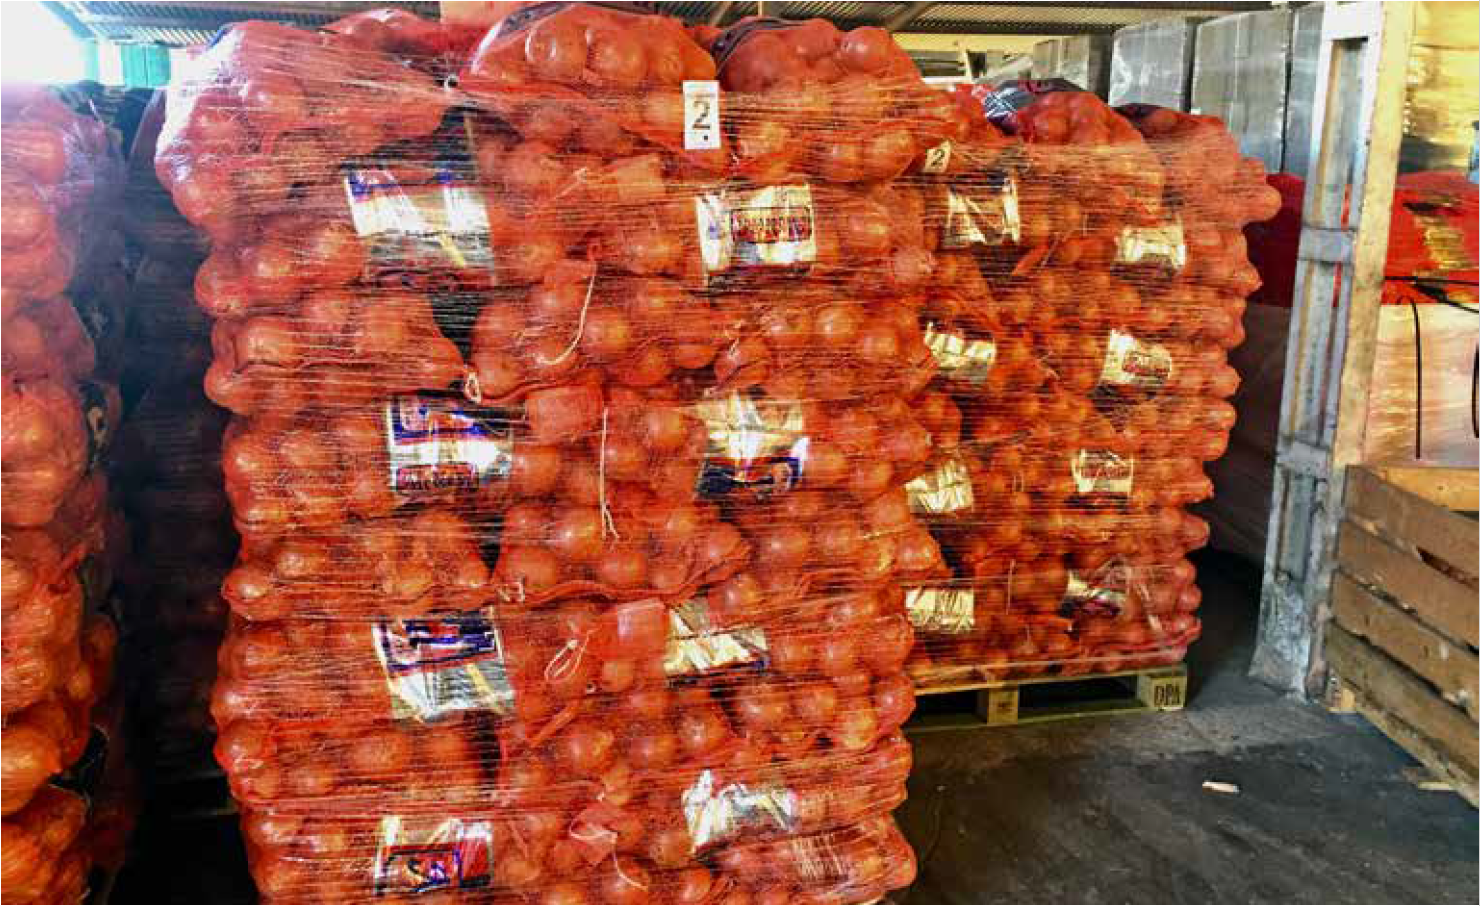 Onions on Pallets